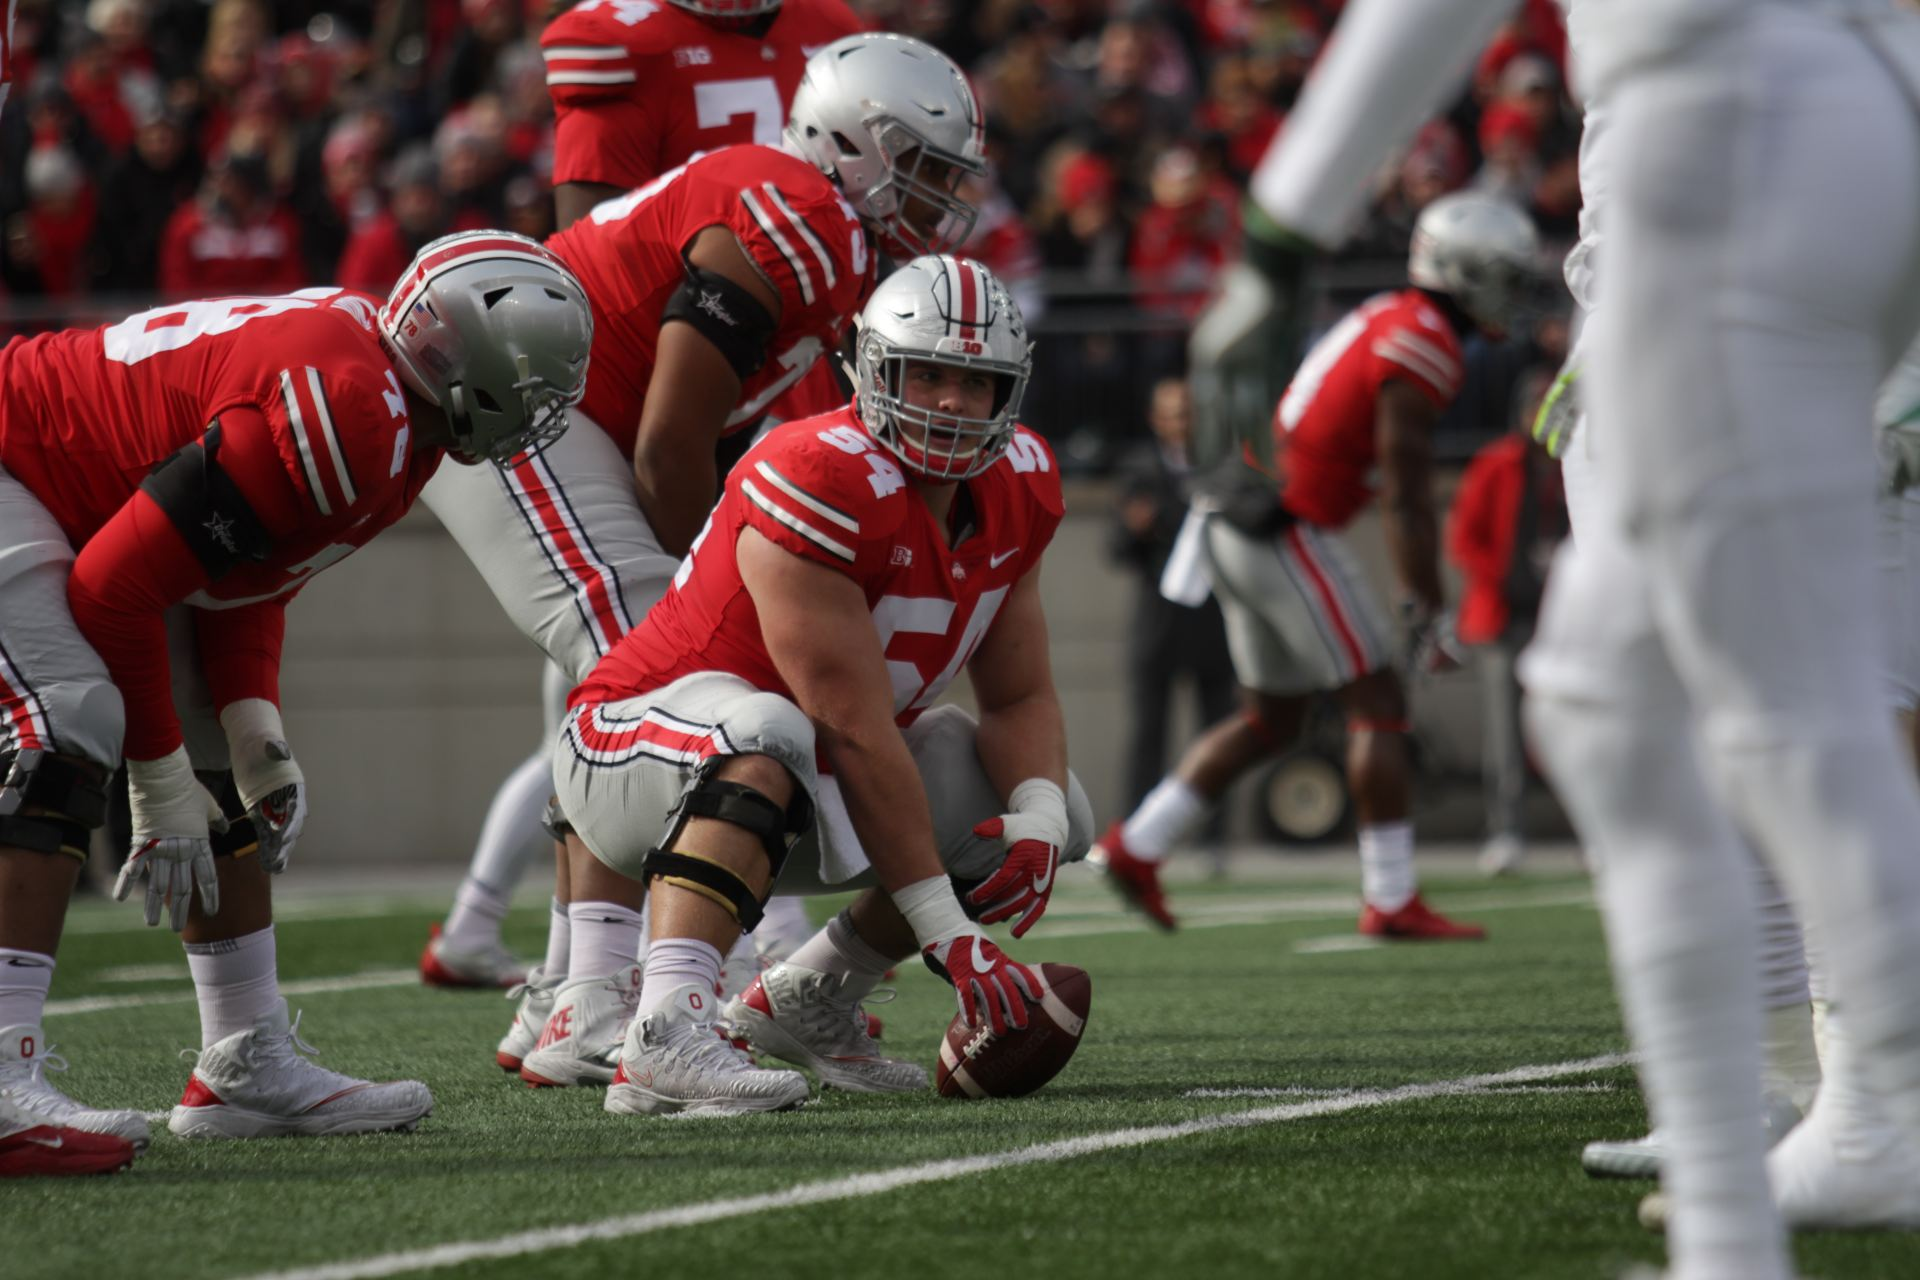 wholesale dealer 6c36a 2b654 Ohio State senior offensive lineman Billy Price (54) prepares for the snap  during the first quarter of the OSU vs. MSU game on Nov. 11 at Ohio Stadium.